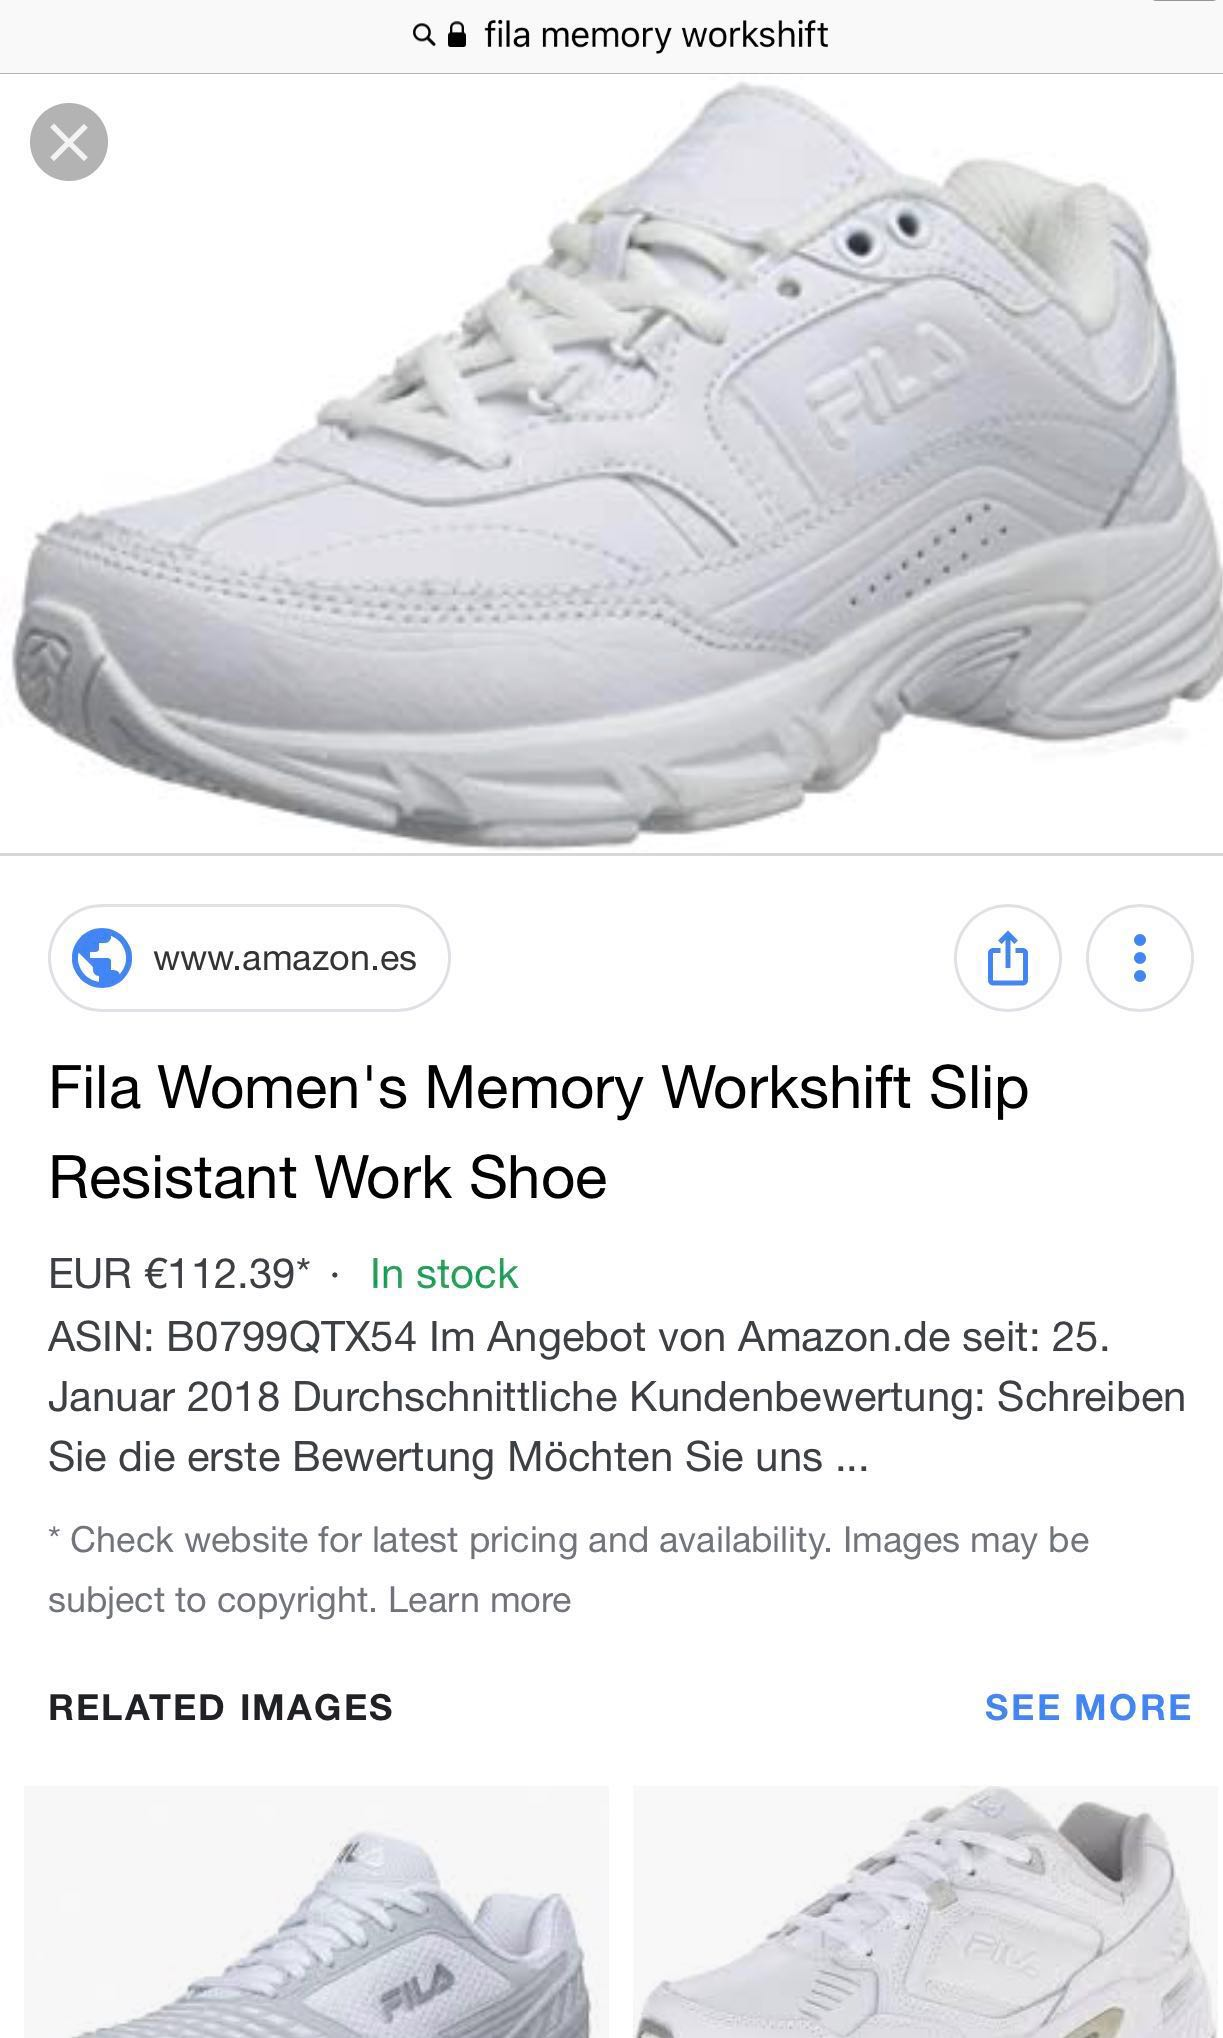 100% authentic Fila memory workshift exact white shoe e498d615a60